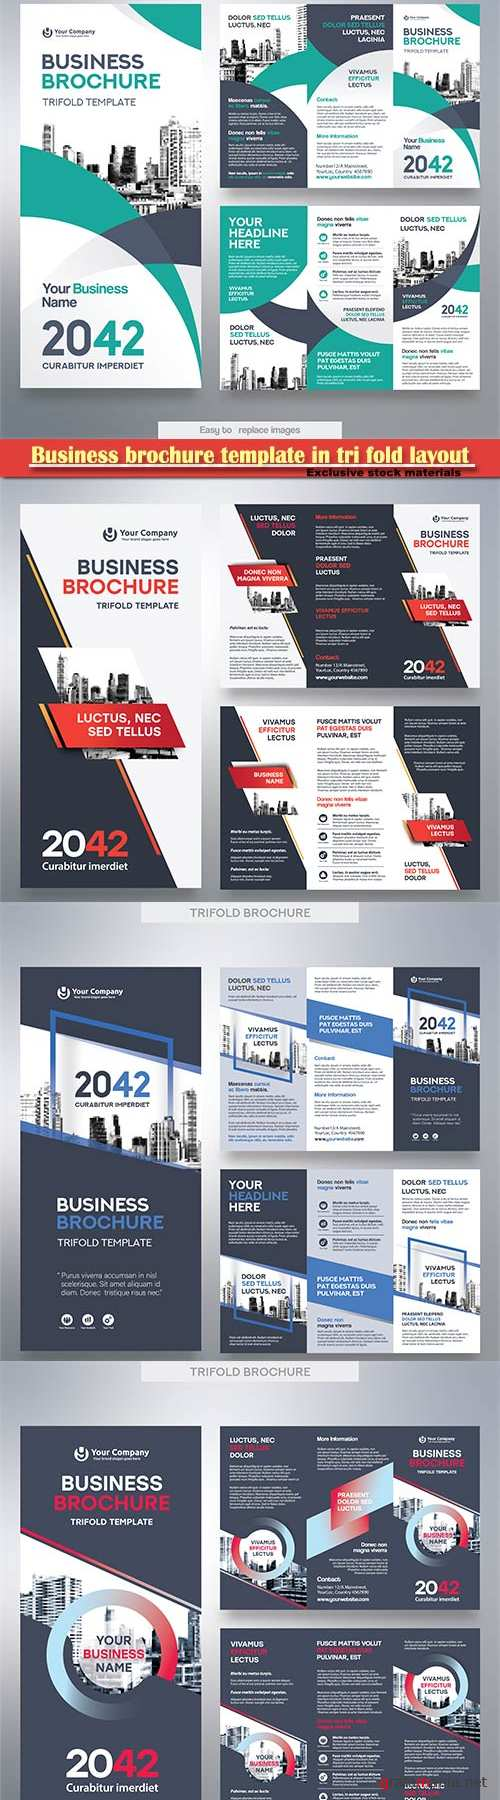 Business brochure template in tri fold layout, corporate design vector illustration